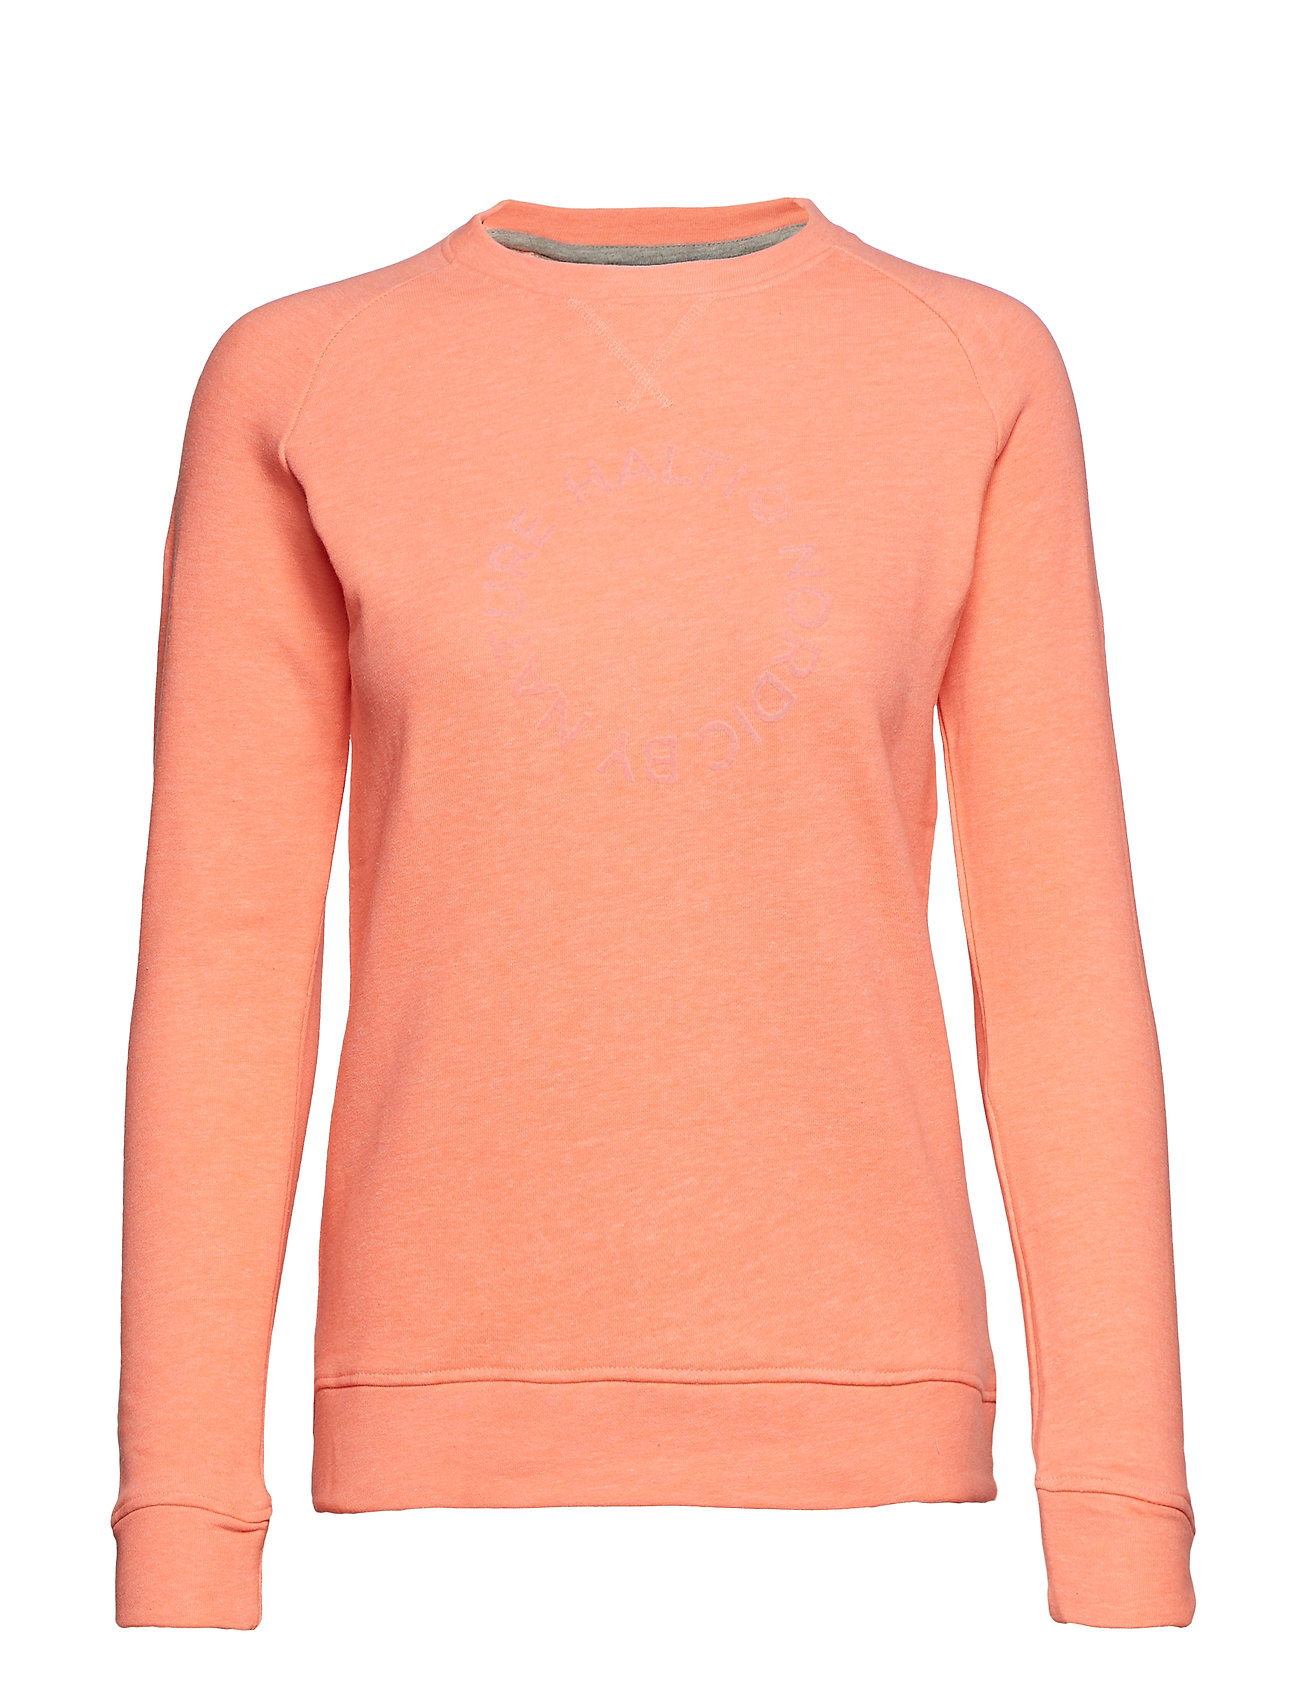 Halti Natta W Shirt - LIGHT CORAL MELANGE